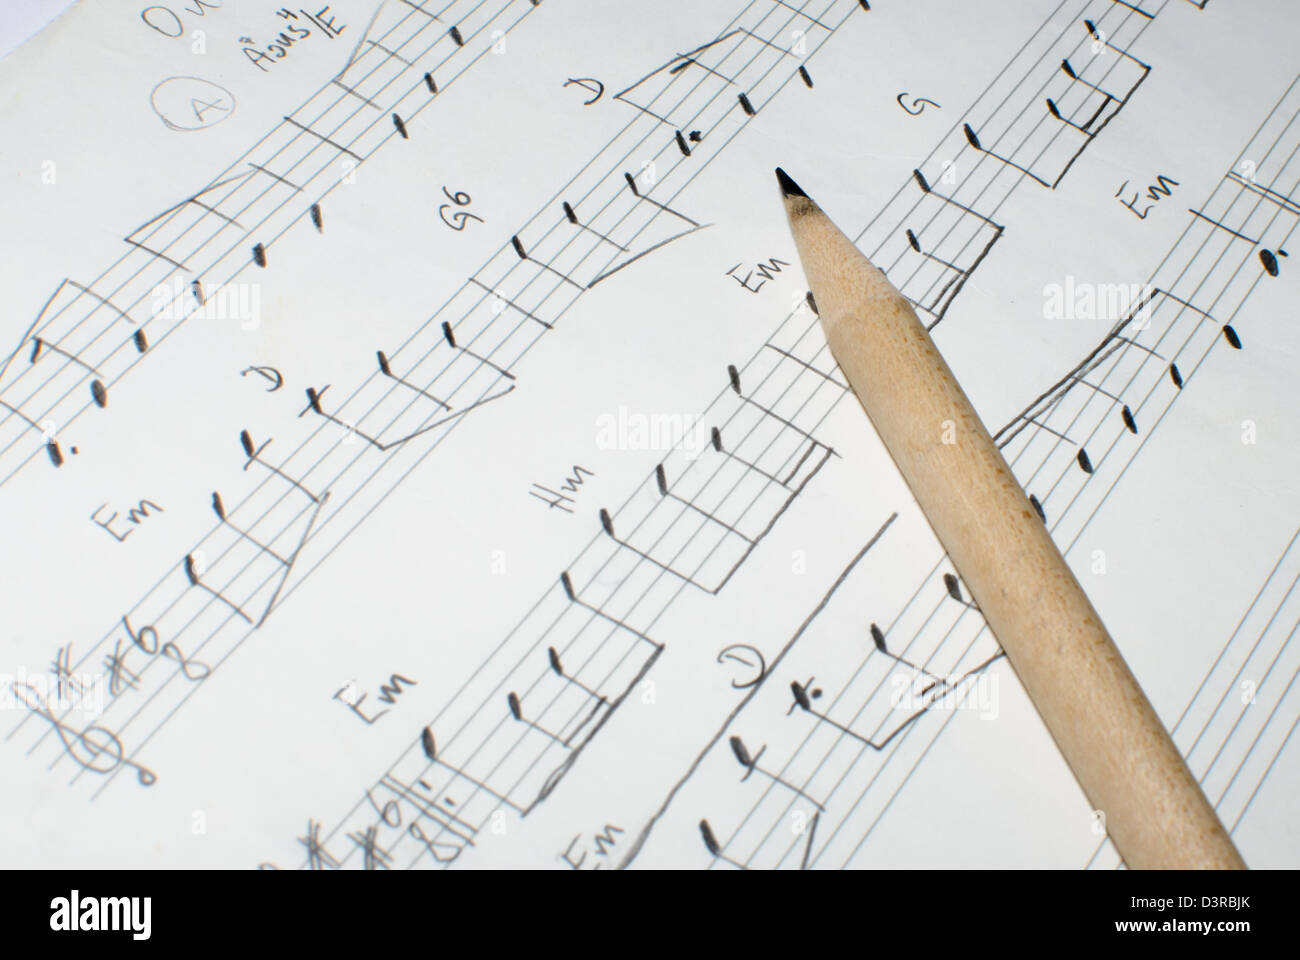 detail of a handwritten note sheet and a pencil - Stock Image